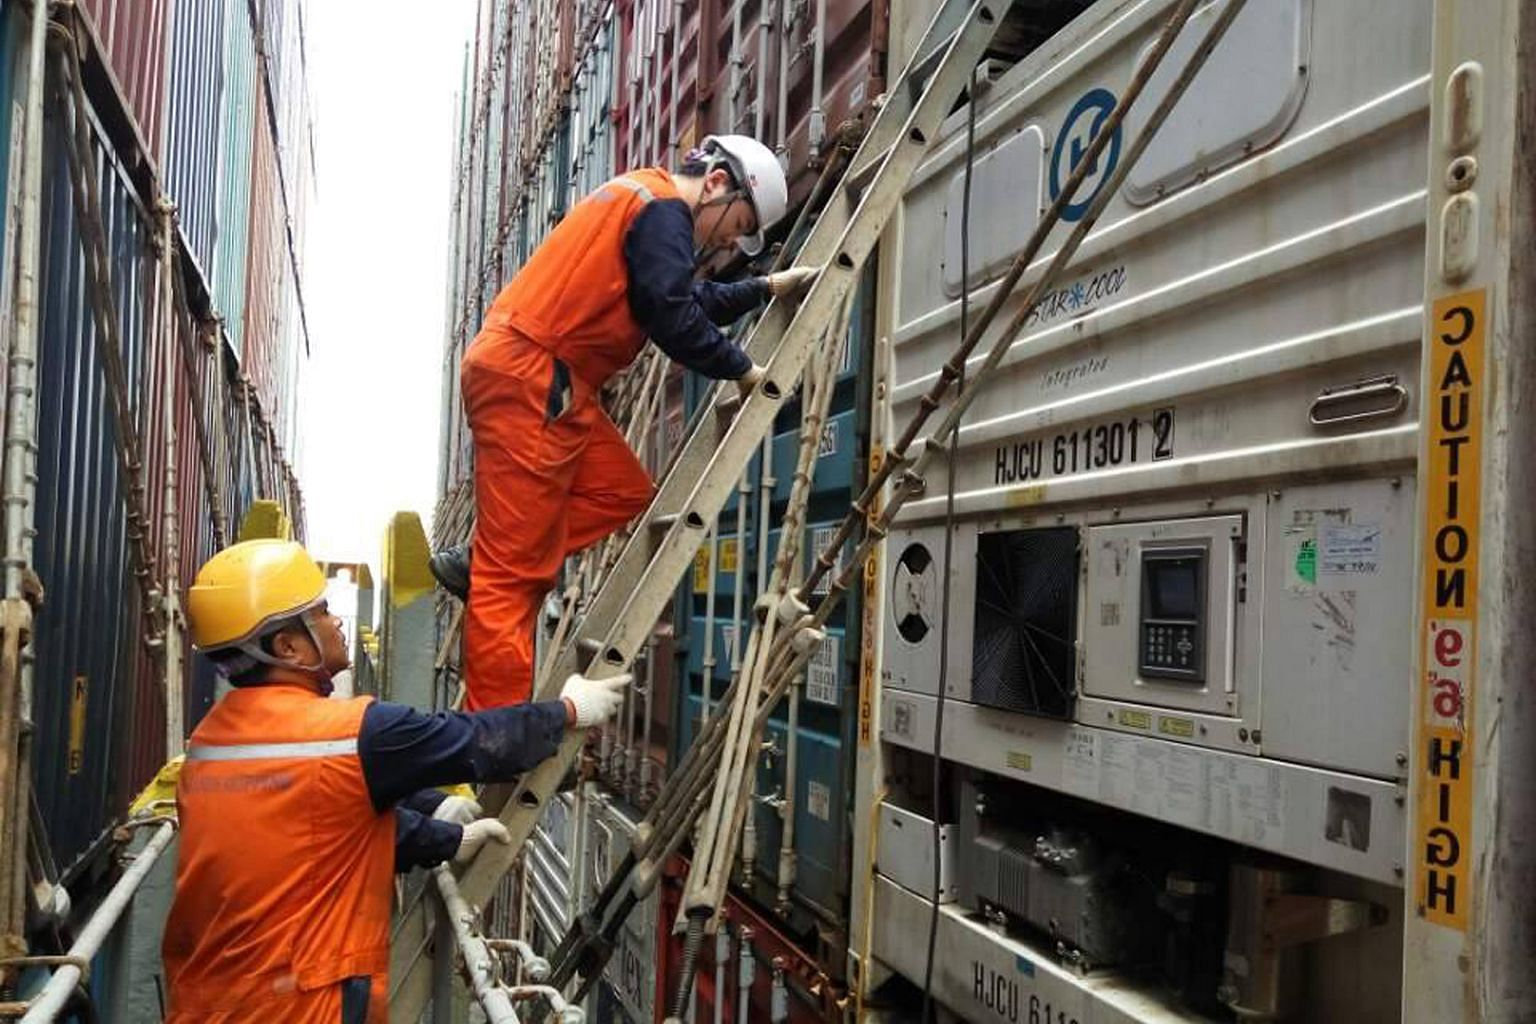 Crew members going about their daily jobs on board the Hanjin vessel. Here, they are checking on the condition of reefers or refrigerated containers, which are typically used to store food or fresh produce. These containers have to be monitored at le